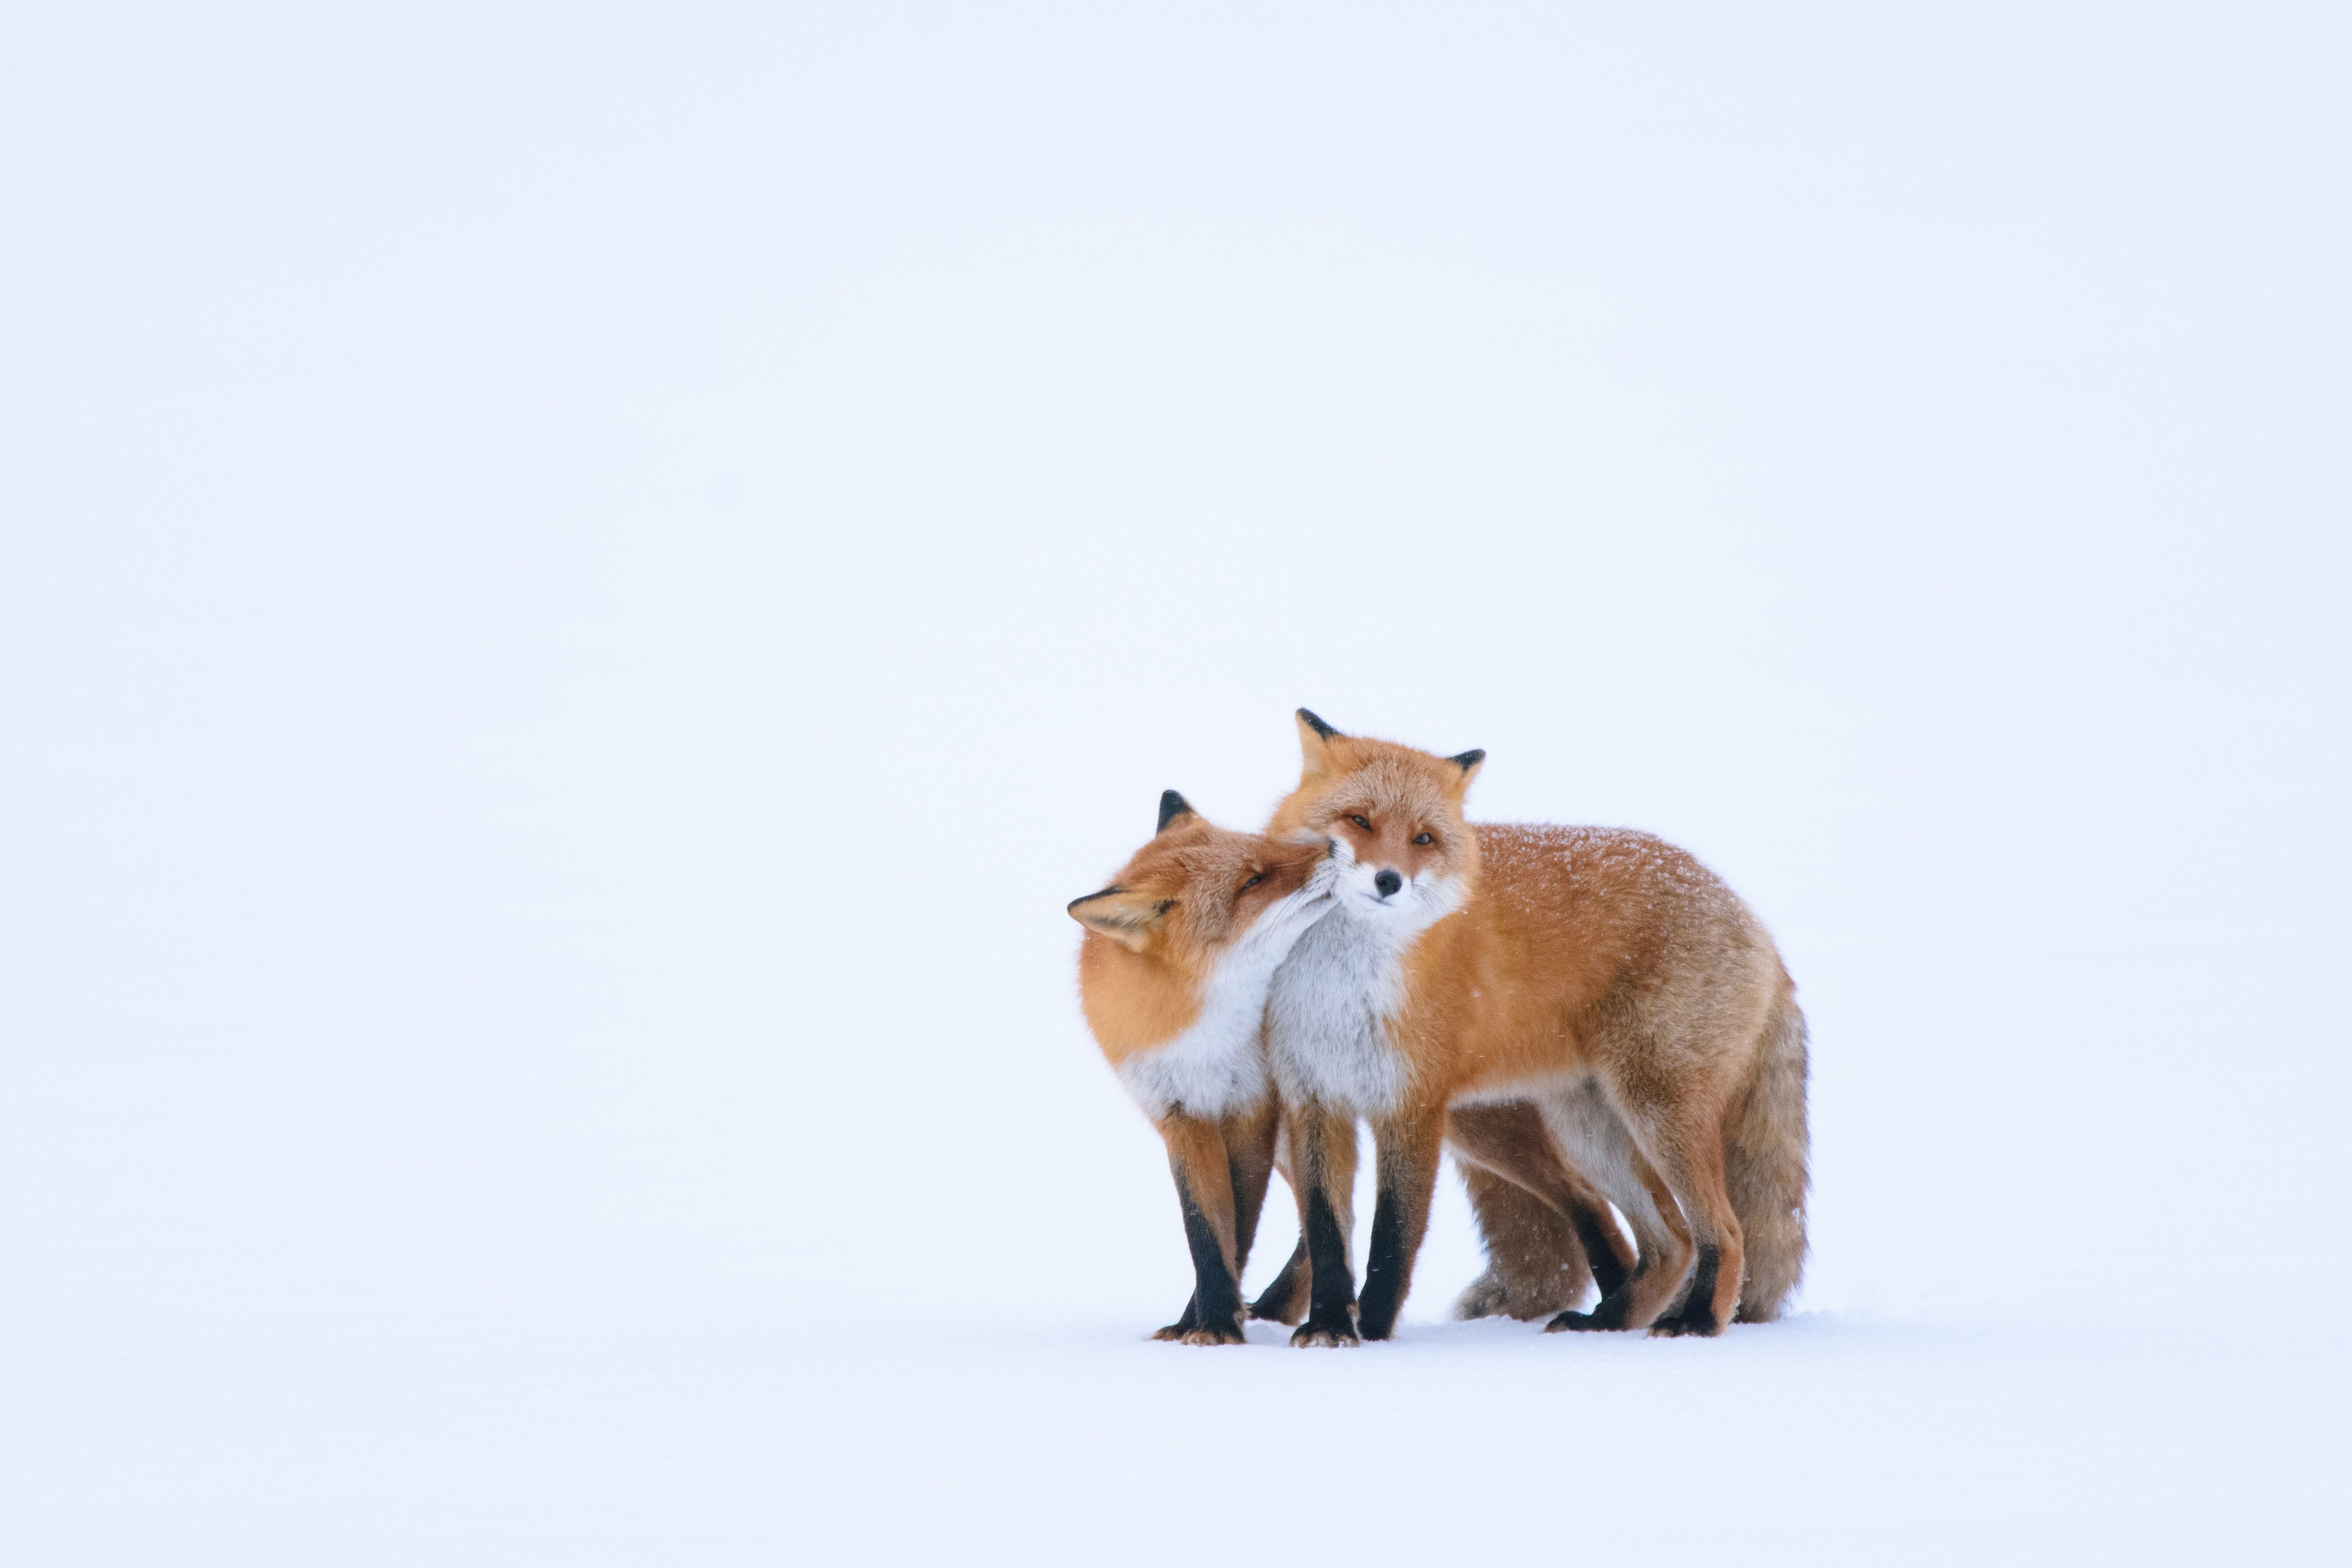 On Hokkaido, the northernmost of Japan's islands, two red foxes share a moment. Foxes, or kitsune, are common in Japanese folklore, often displaying magical properties.